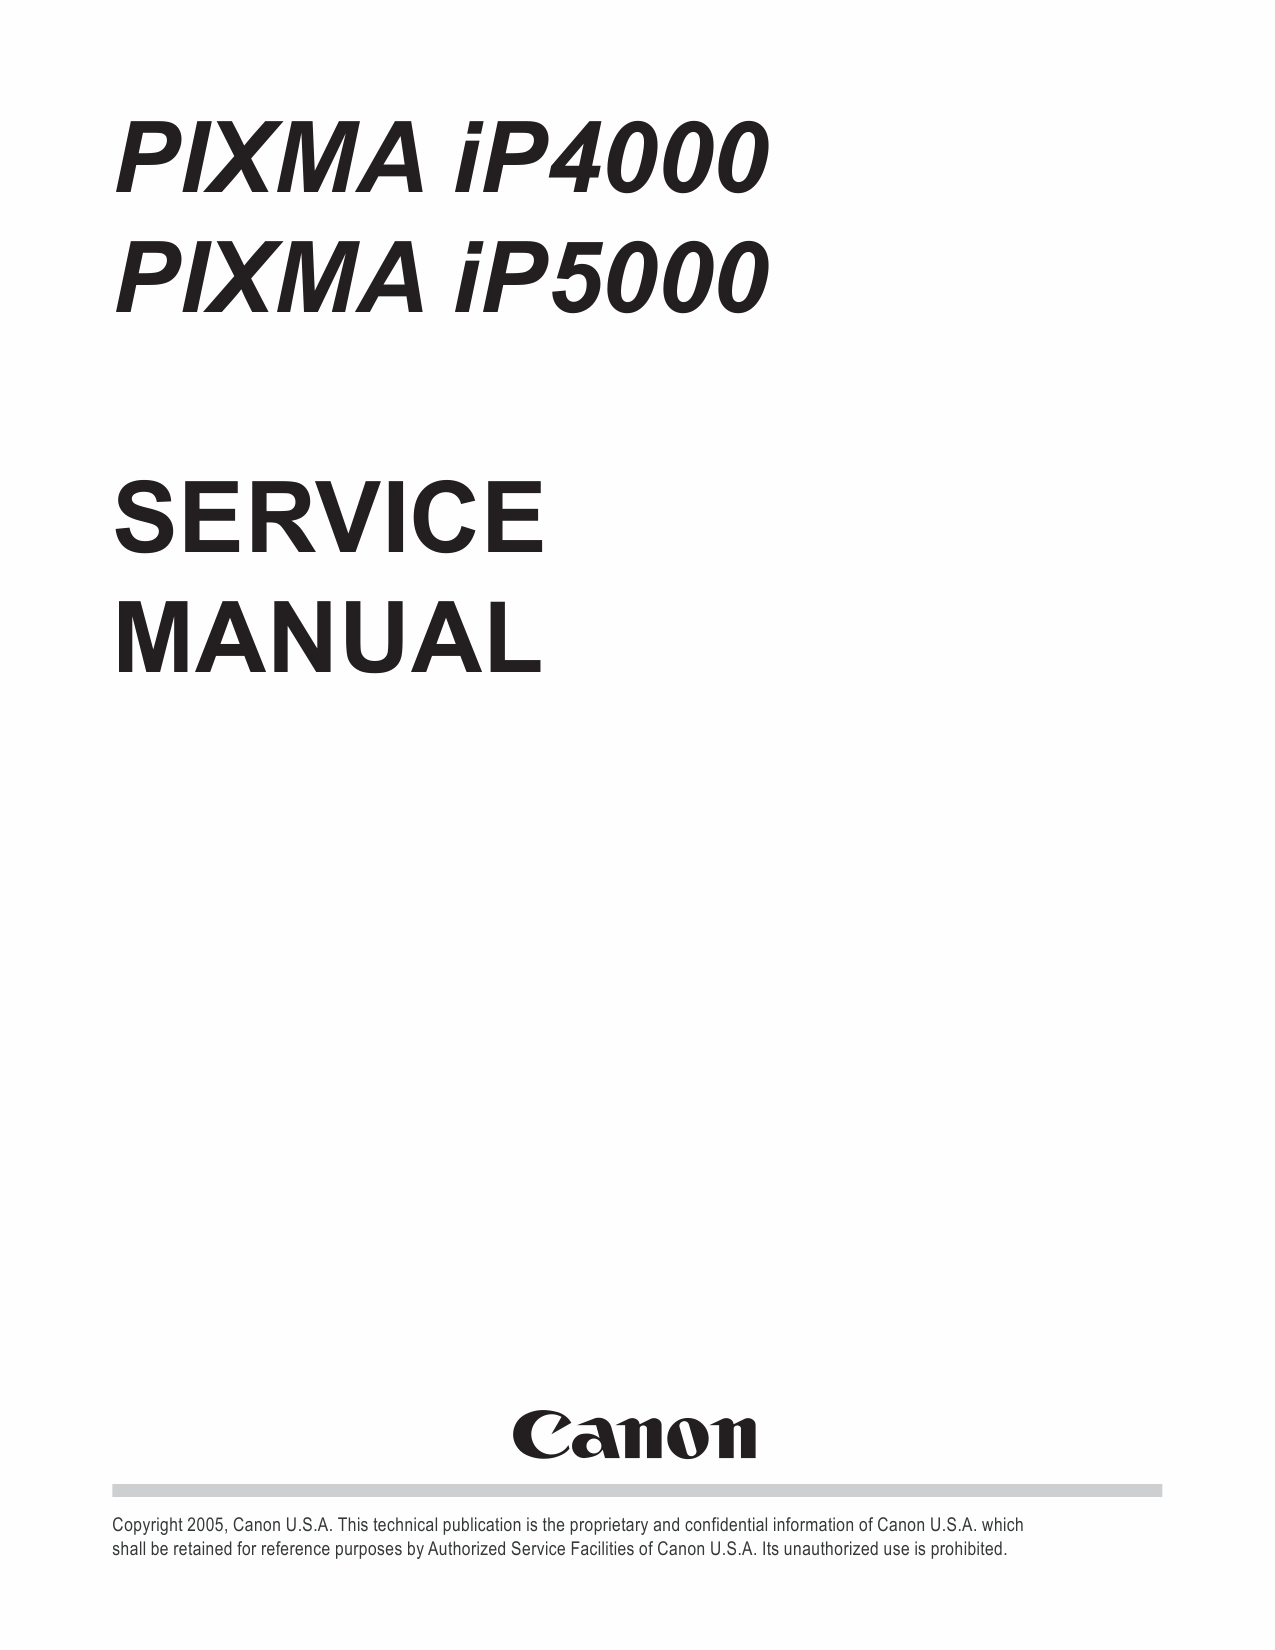 Canon PIXMA iP5000 Service Manual